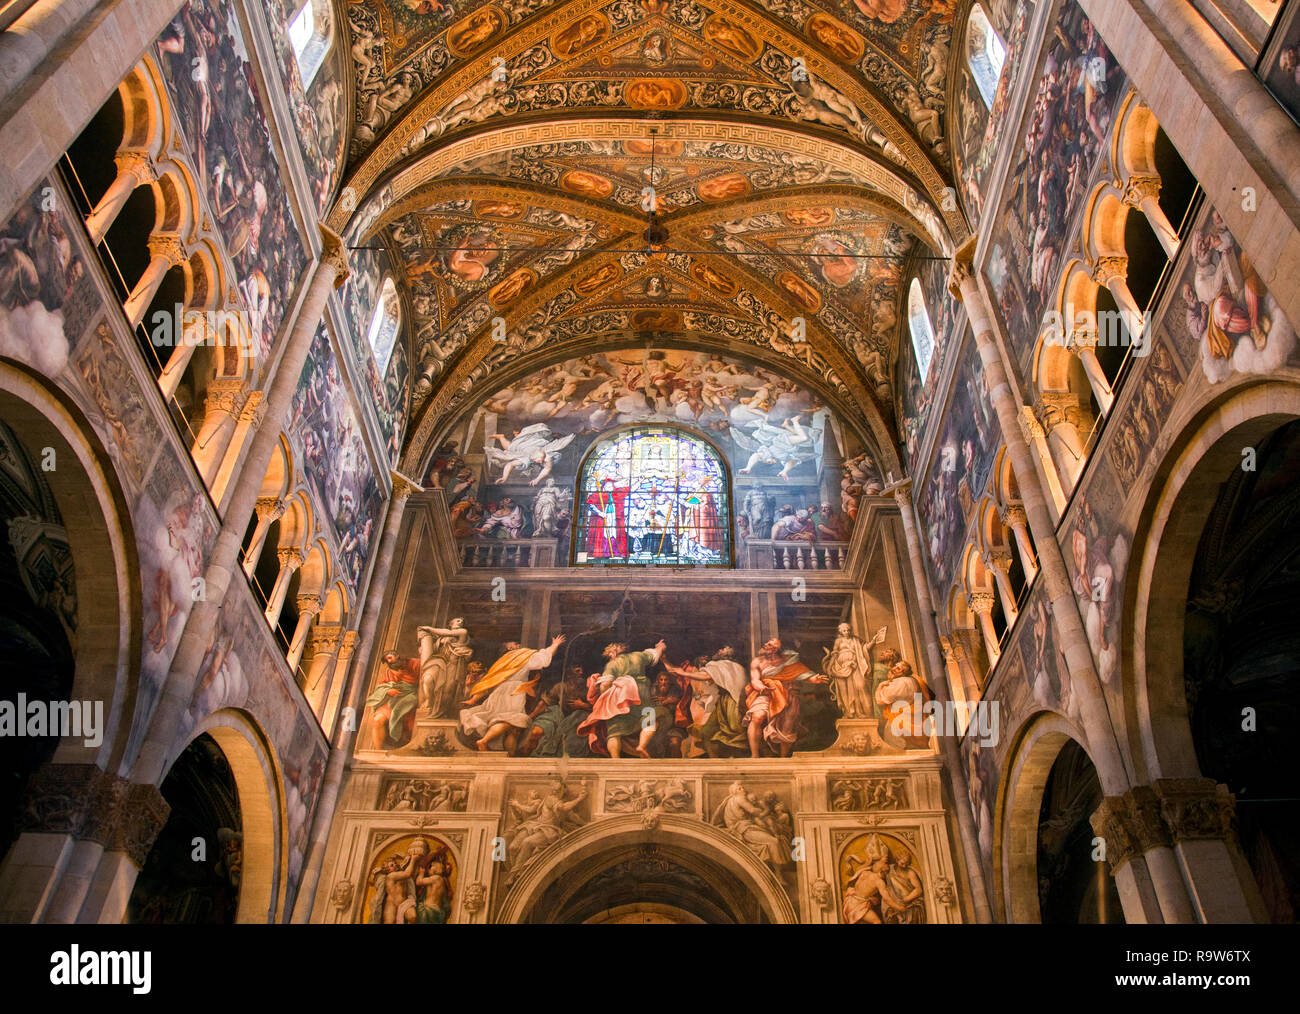 Parma Cathedral, Italy. Along the nave, in the lunettes above the spans are monochrome frescoes of Old Testament stories, as well as event of the pass - Stock Image